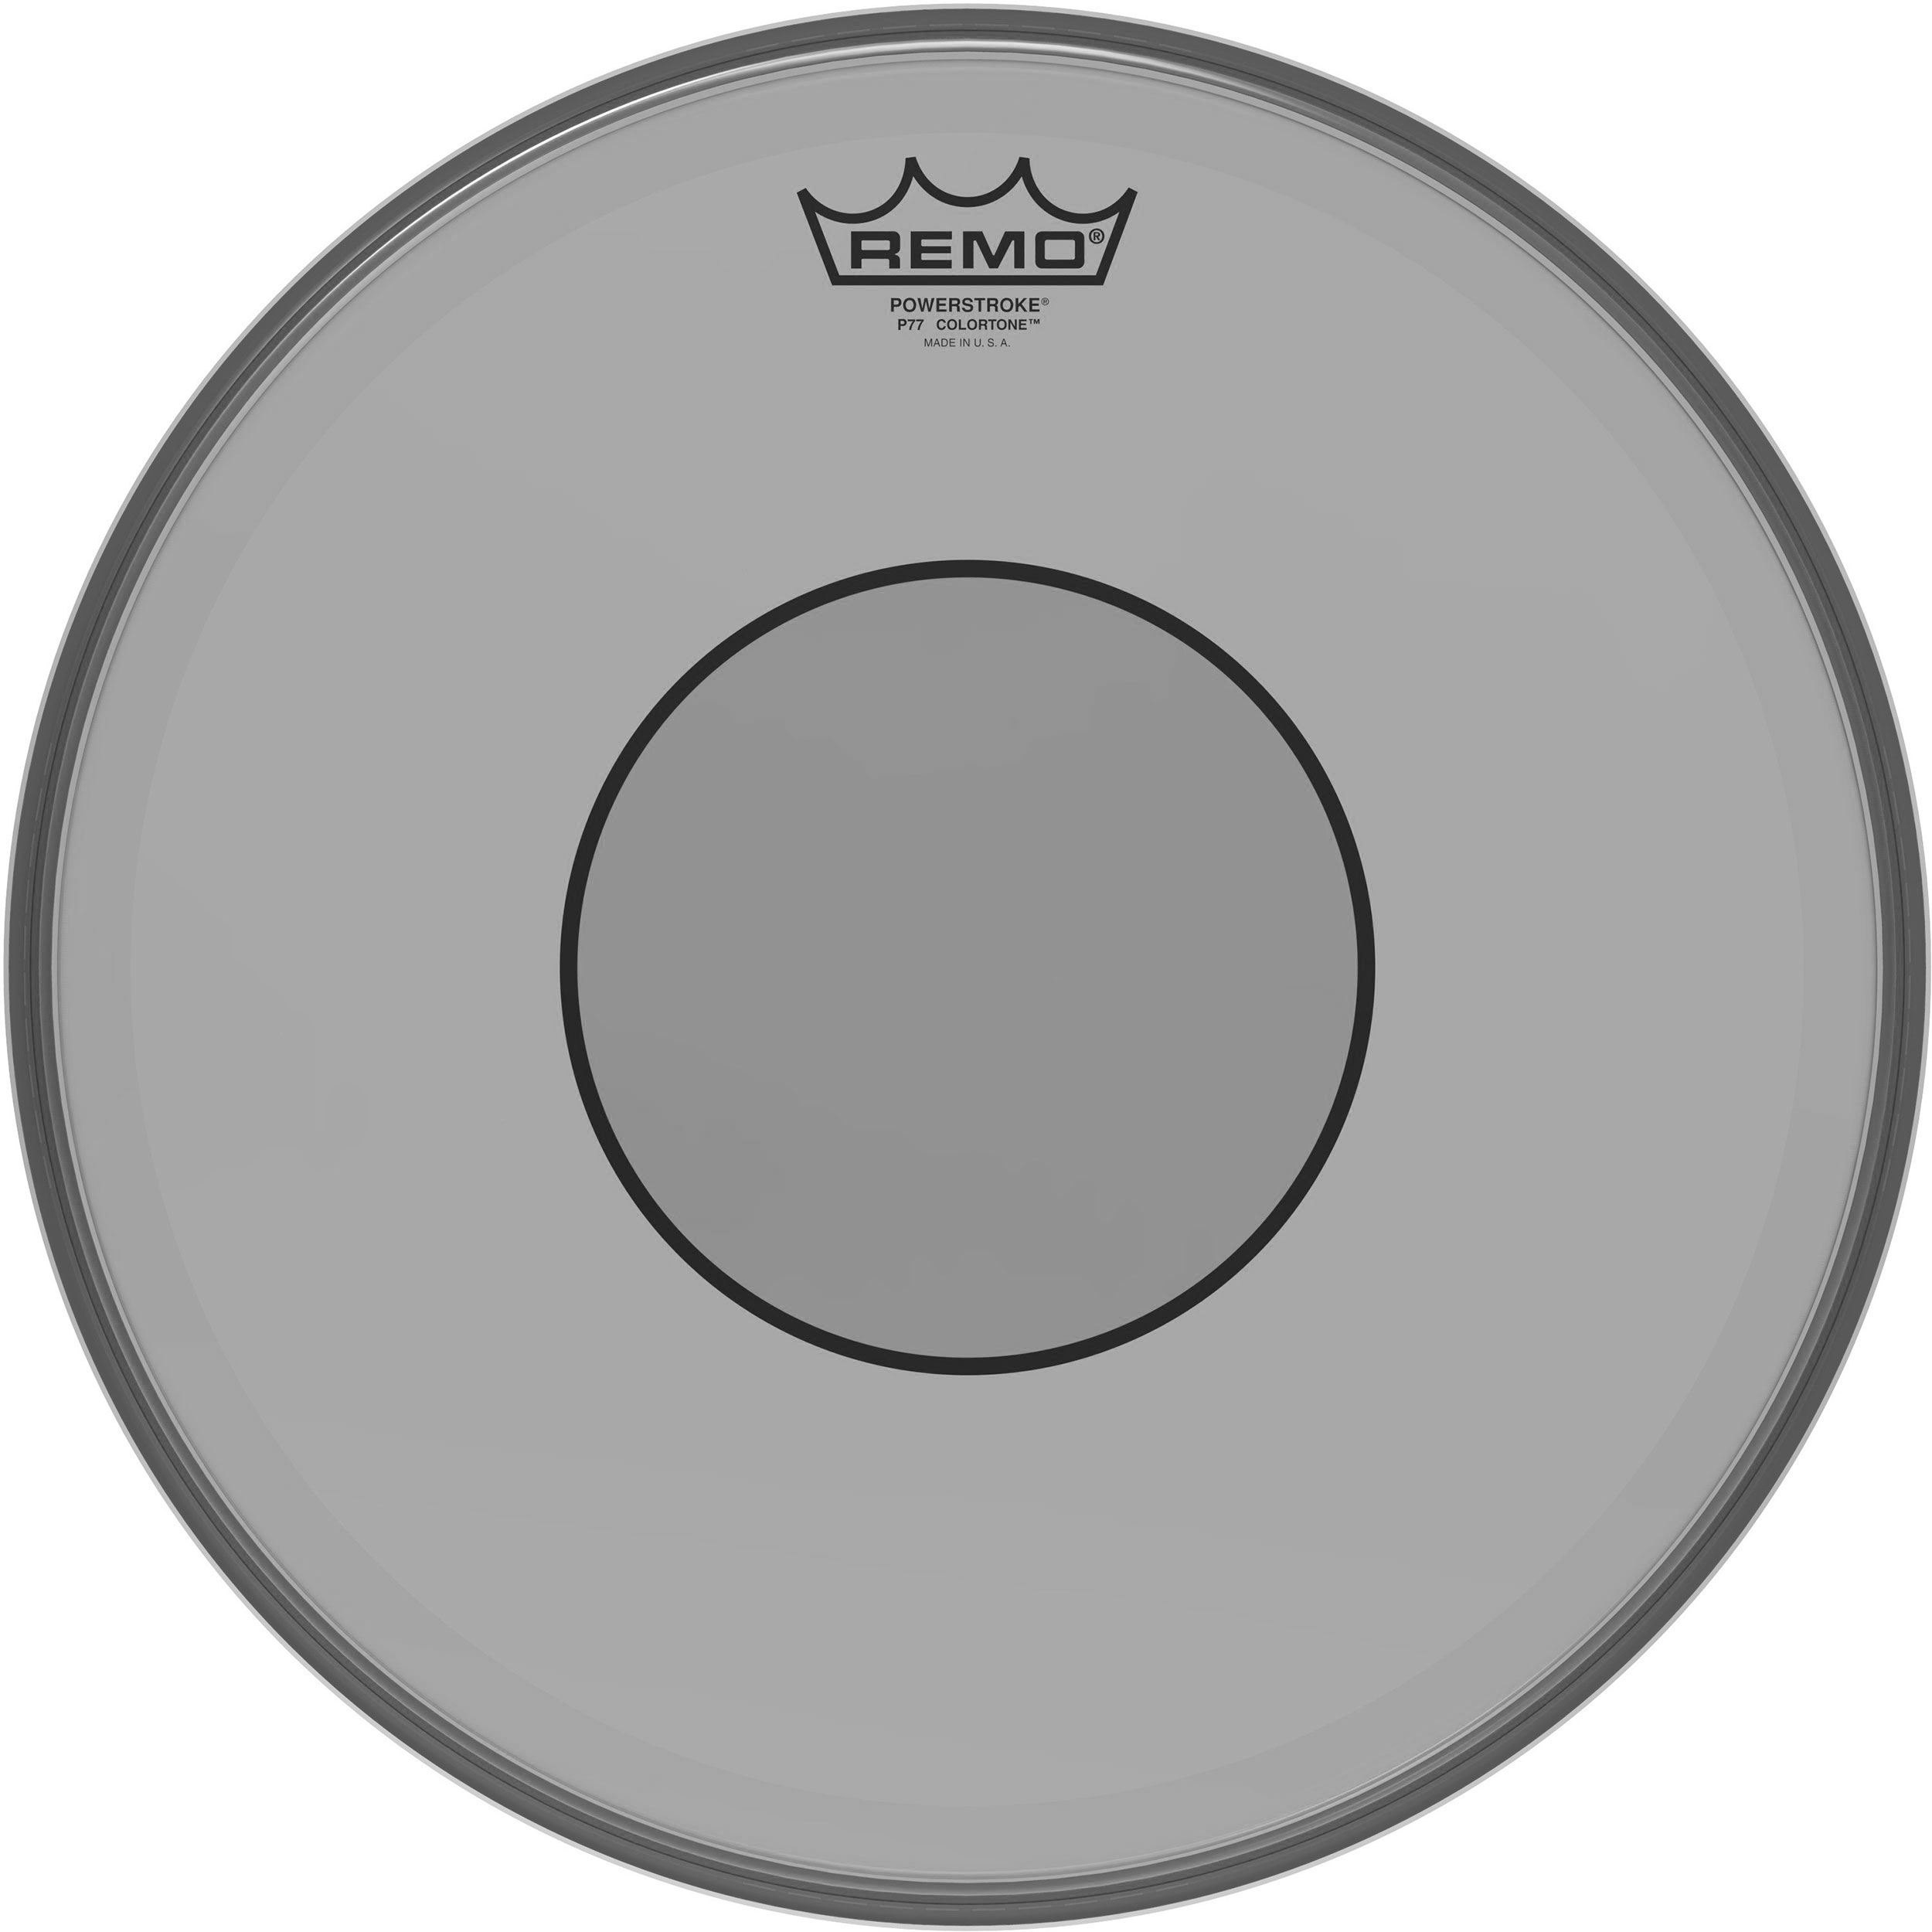 "Remo 13"" Powerstroke 77 Colortone Smoke Drum Head"